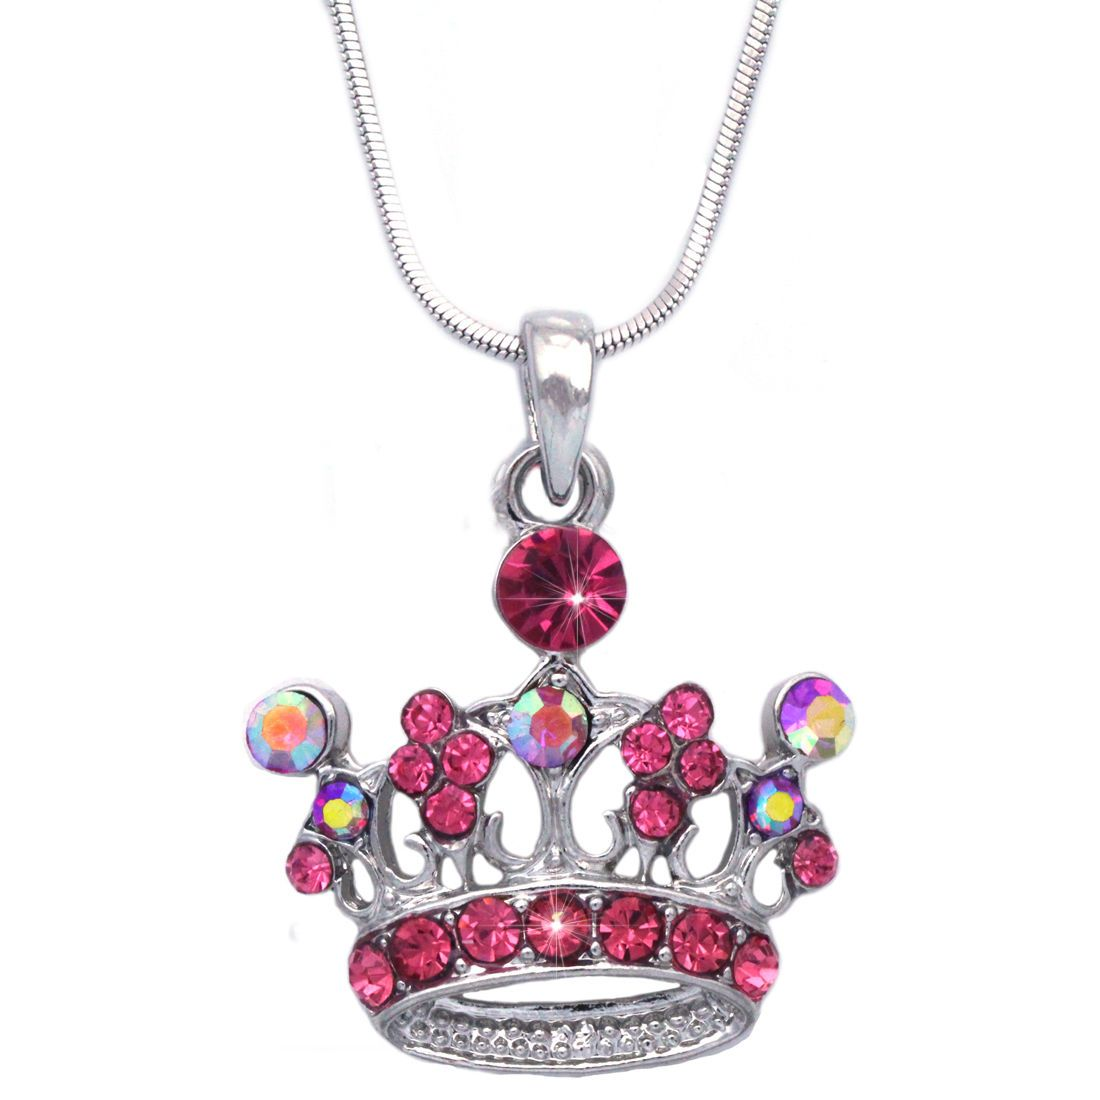 Hot Pink Princess Royal Crown Tiara Pendant Necklace Girl Fashion Jewelry Pendant Necklace Fashion Jewelry Pink Princess